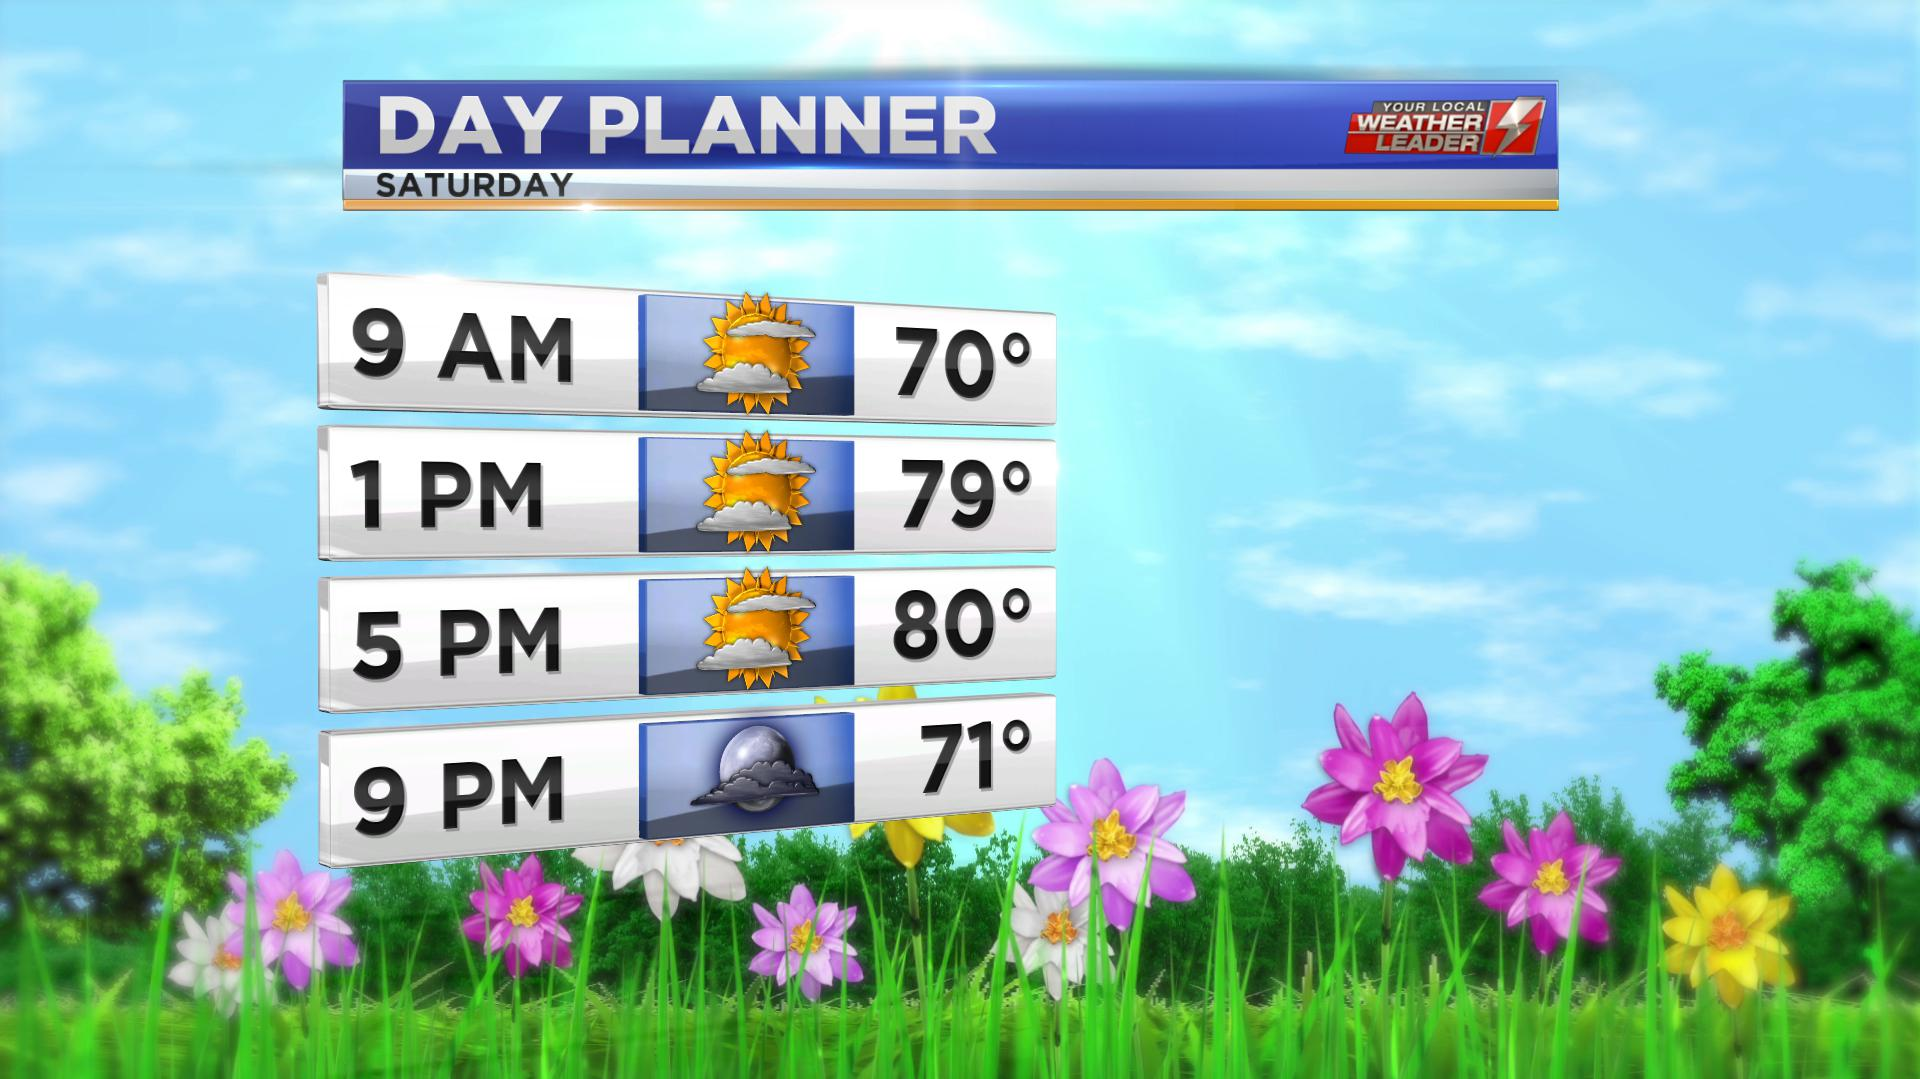 Day Planner for Saturday 08 June 2019